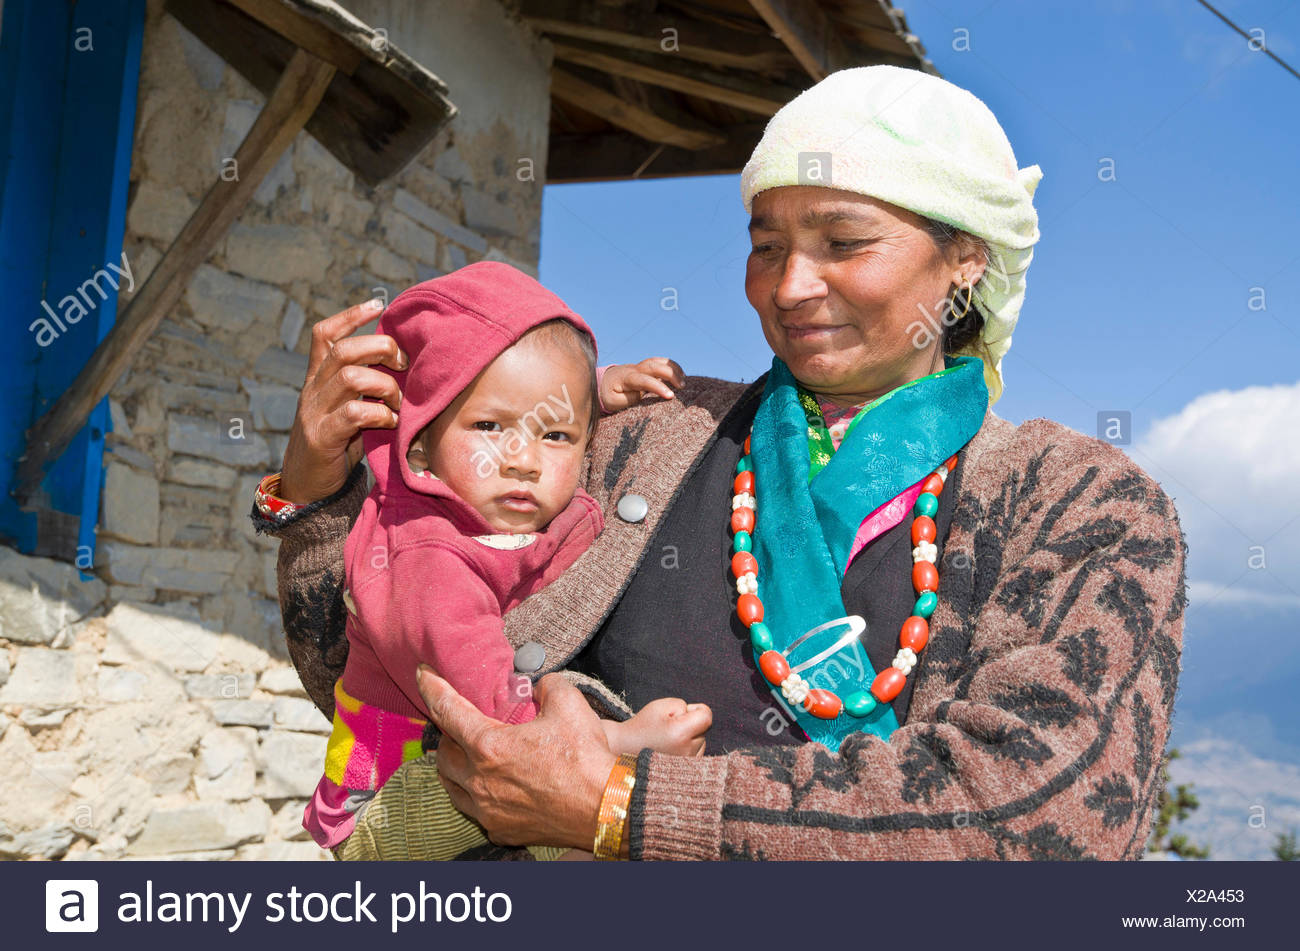 Nepali mother with her baby, Sete, Solukhumbu District, Sagarmāthā Zone, Nepal - Stock Image